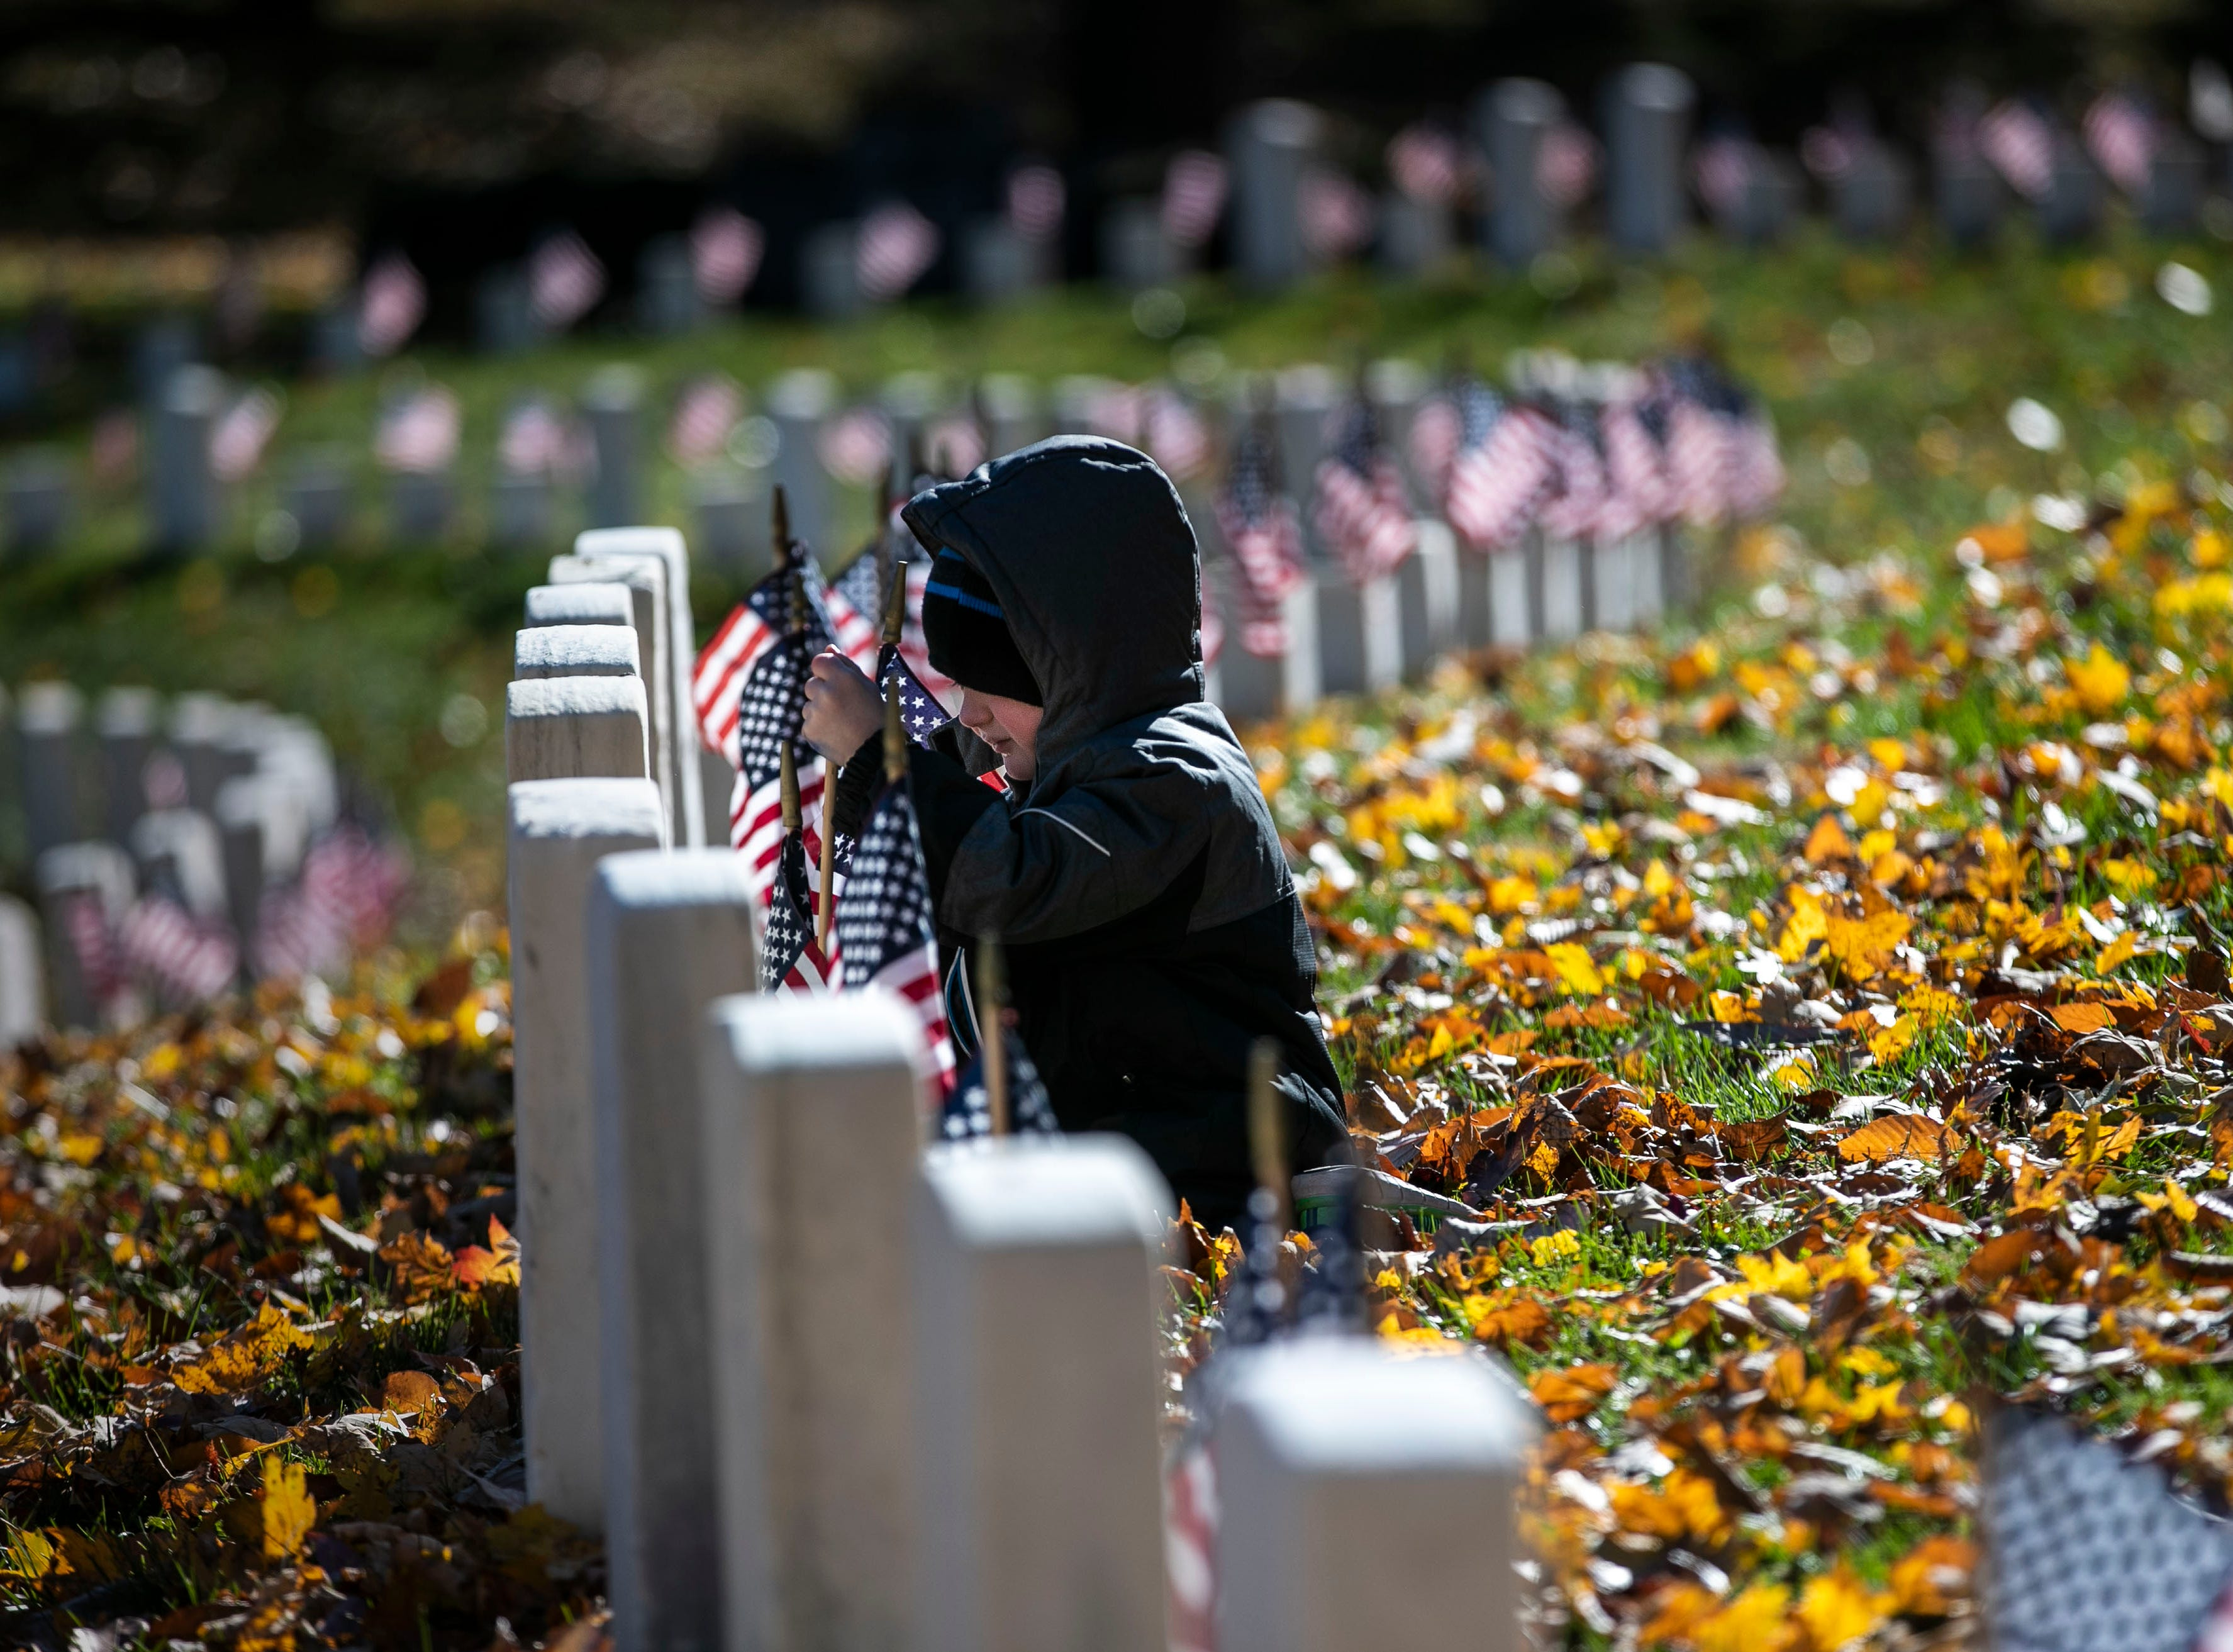 Michael Bonis, 5, finds a grave needing a small American flag during a Flags 4 Vets event at Cave Hill Cemetery Saturday, Nov. 10, 2018. Veterans Day is Sunday, Nov. 11. Around 250 volunteers placed nearly 7,500 flags on military veteran gravesites.